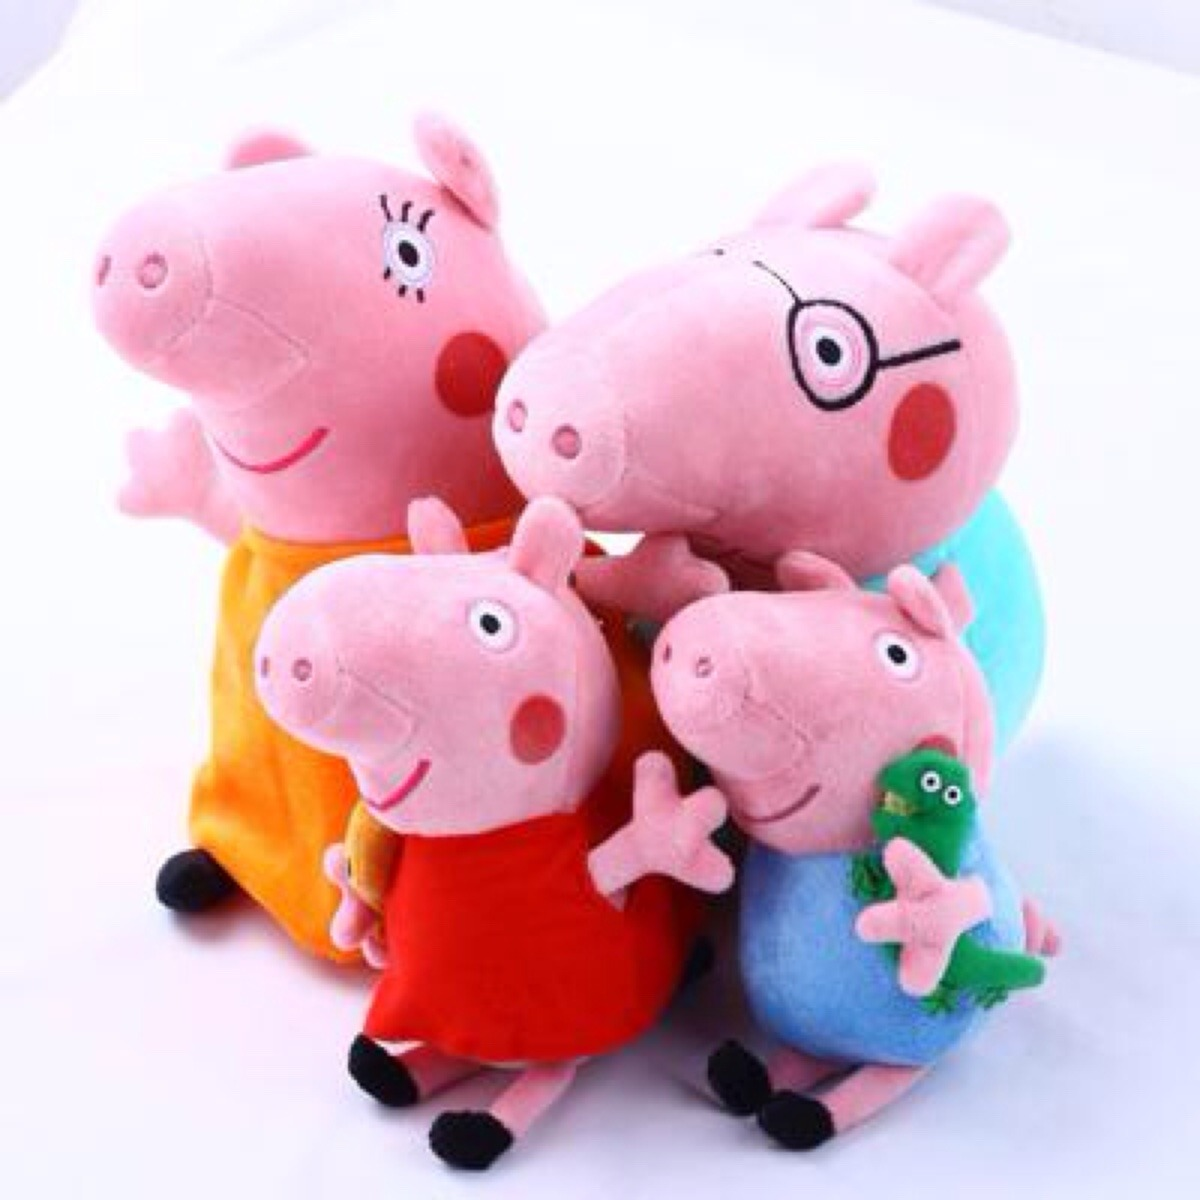 imagenes de peppa pig y sus amigos taringa. Black Bedroom Furniture Sets. Home Design Ideas